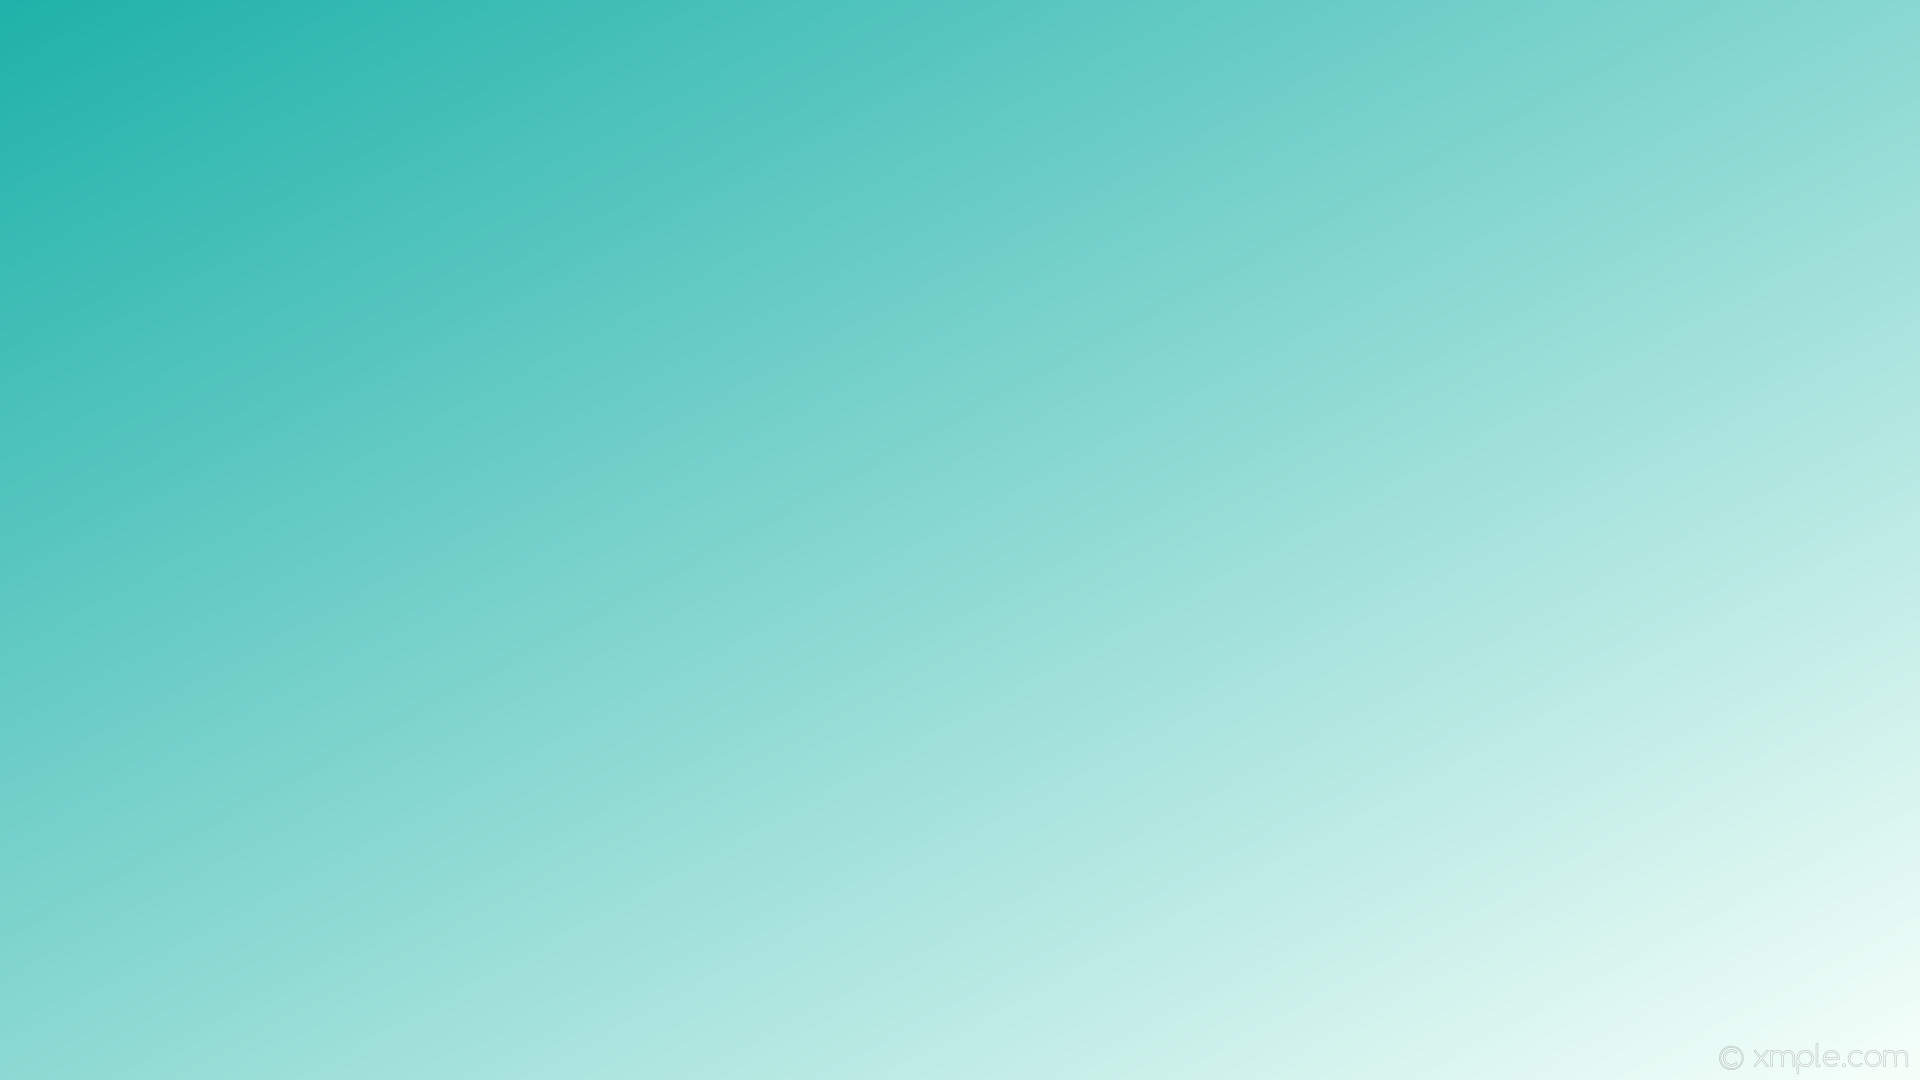 1920x1080 wallpaper green gradient linear white mint cream light sea green #f5fffa  #20b2aa 330°